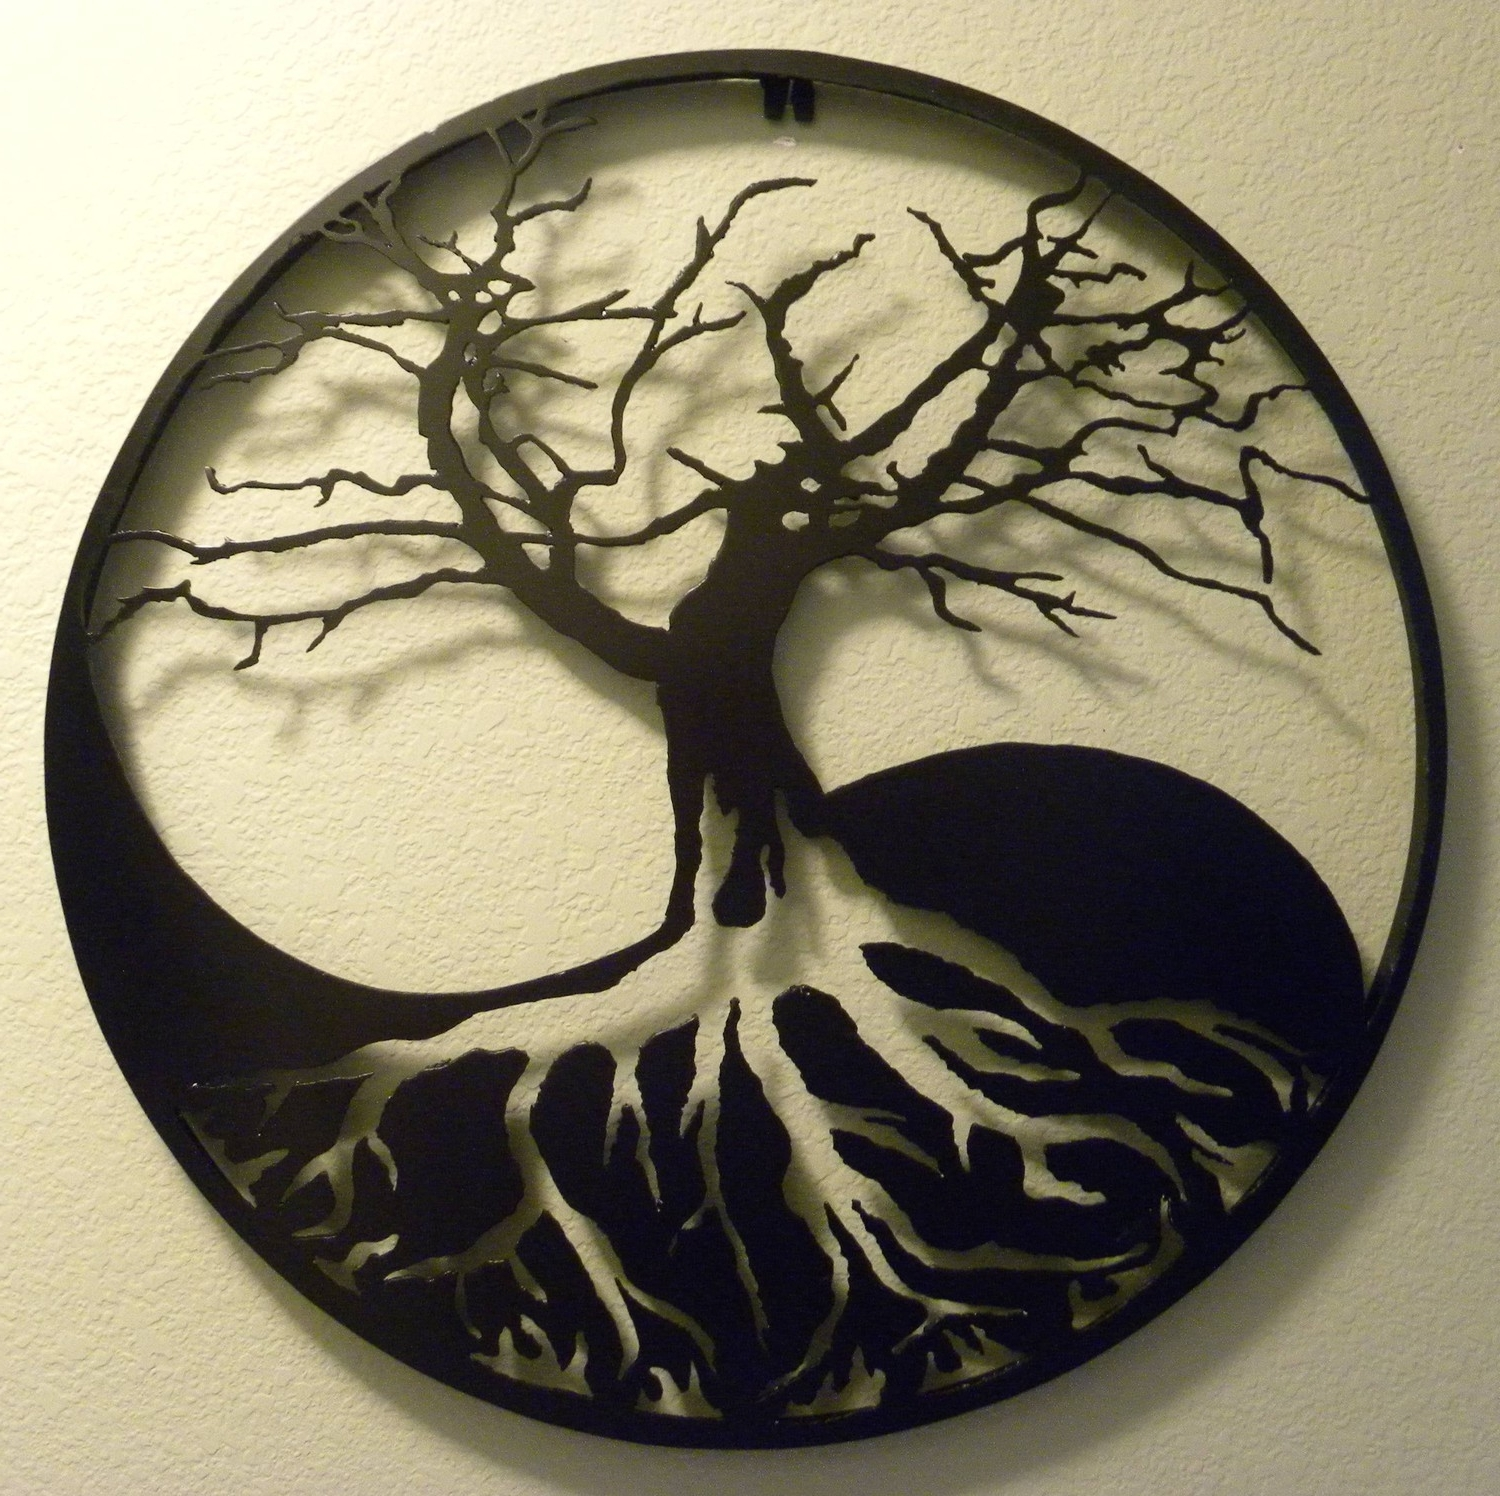 Yin Yang Wall Art Inside Preferred Wall Art Ideas Design : Tree White Yin Yang Wall Art Black Root (View 4 of 15)